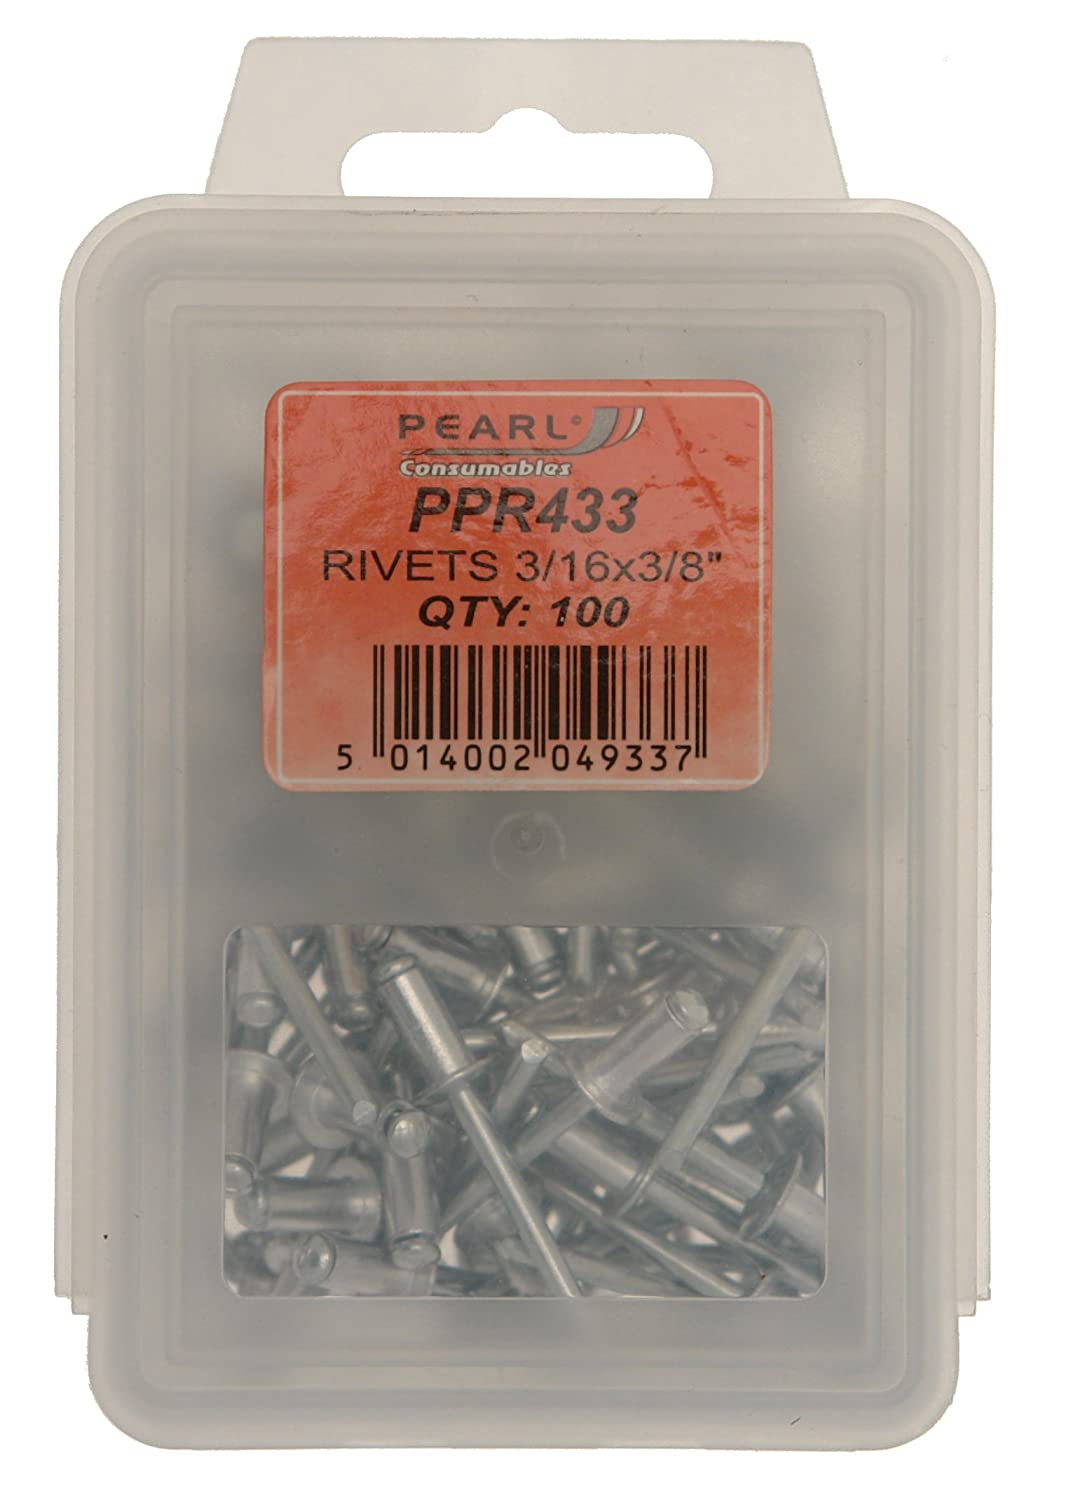 Pearl PPR433 3/16 x 3/8-inch Rivets (Pack of 100) Pearl Automotive